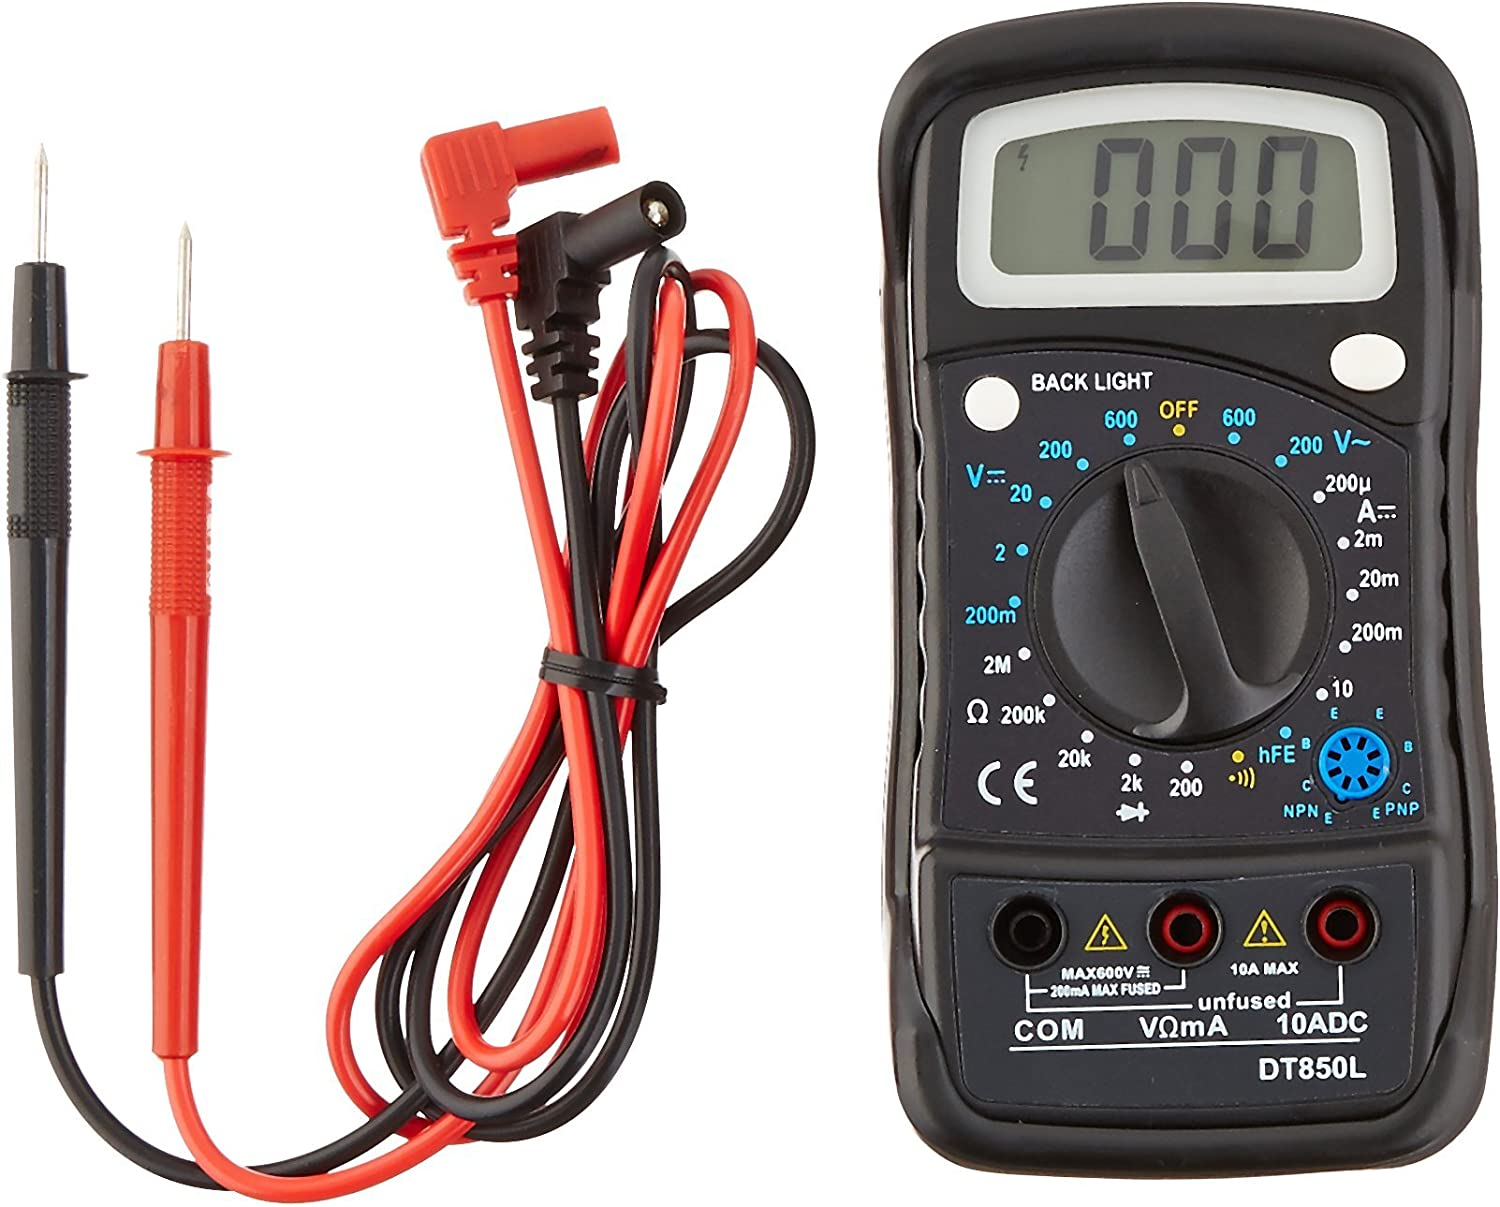 True Power Time sale Max 89% OFF Digital Multimeter with Illuminated Display Large LCD